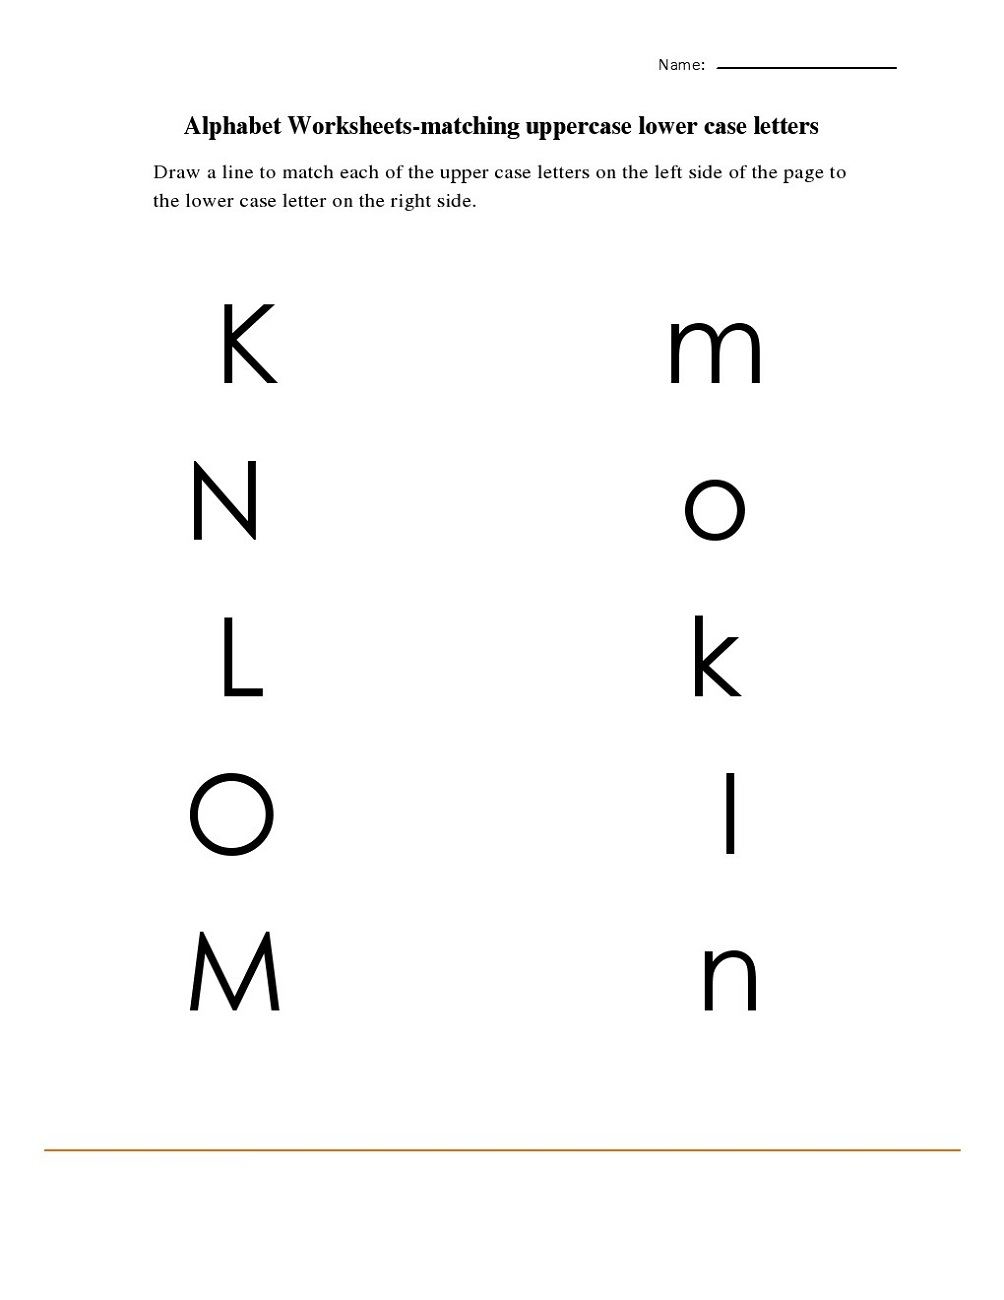 lowercase letters worksheet for practice